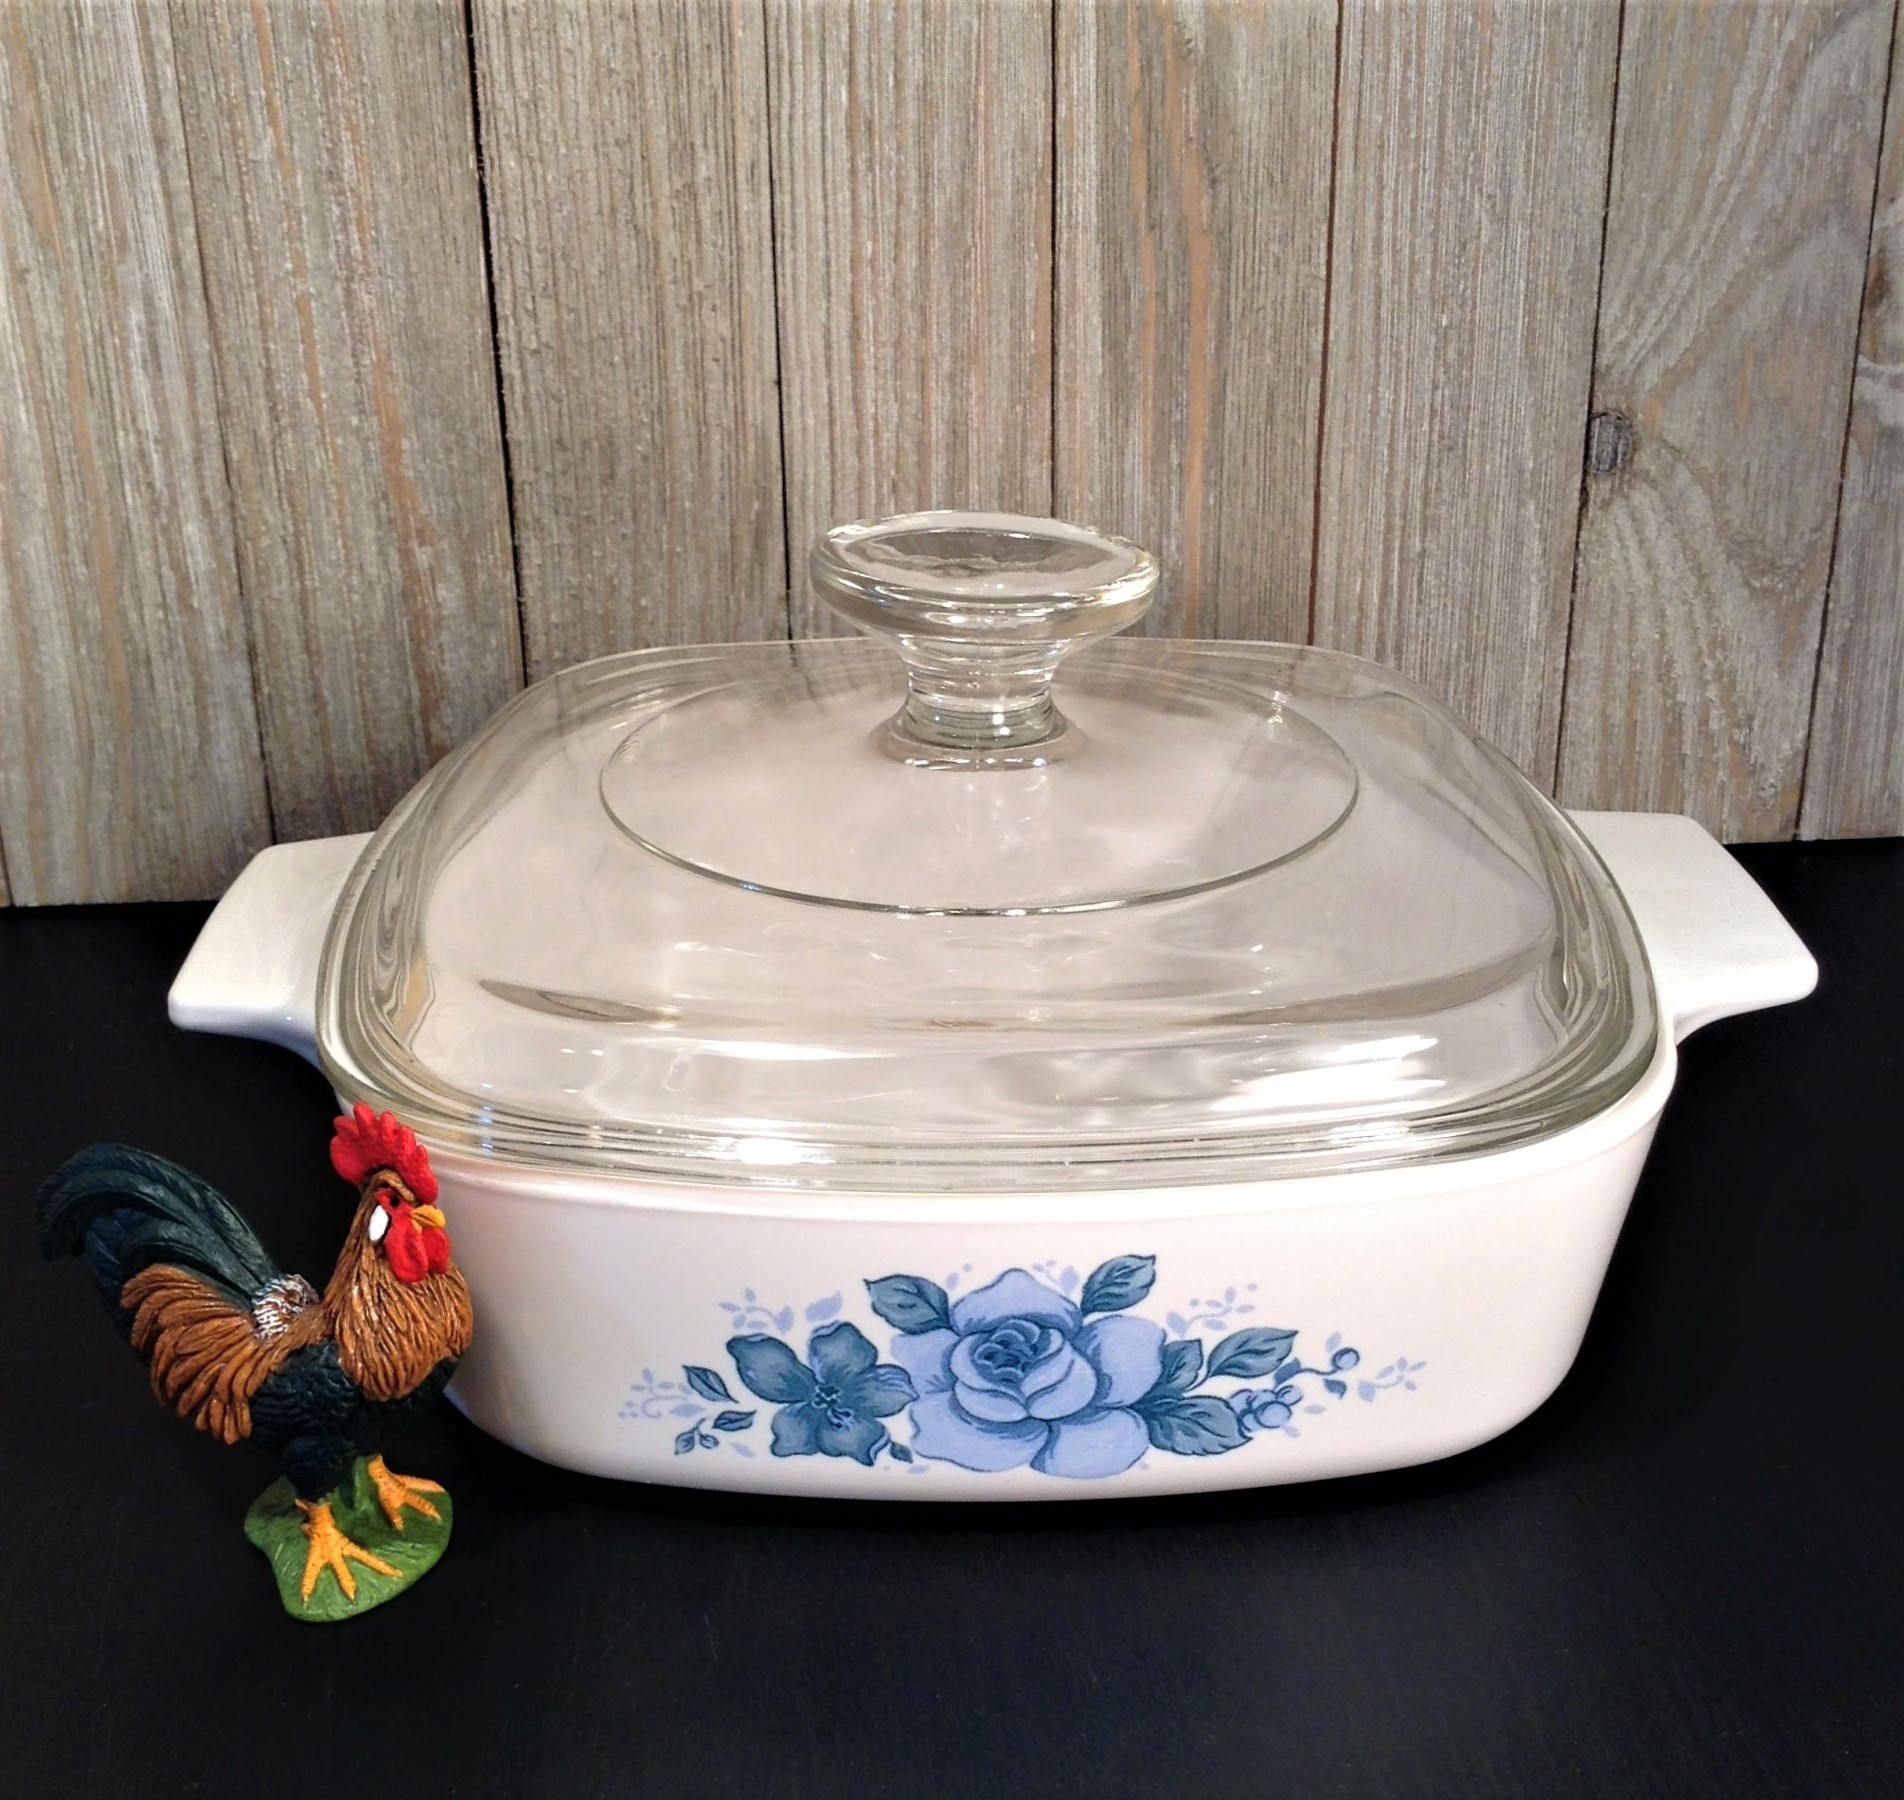 Baking Dish with Lid, Pattern 475 Butterfly Gold 2 1970s Kitchen Vintage Pyrex Glass Bakeware Covered Casserole